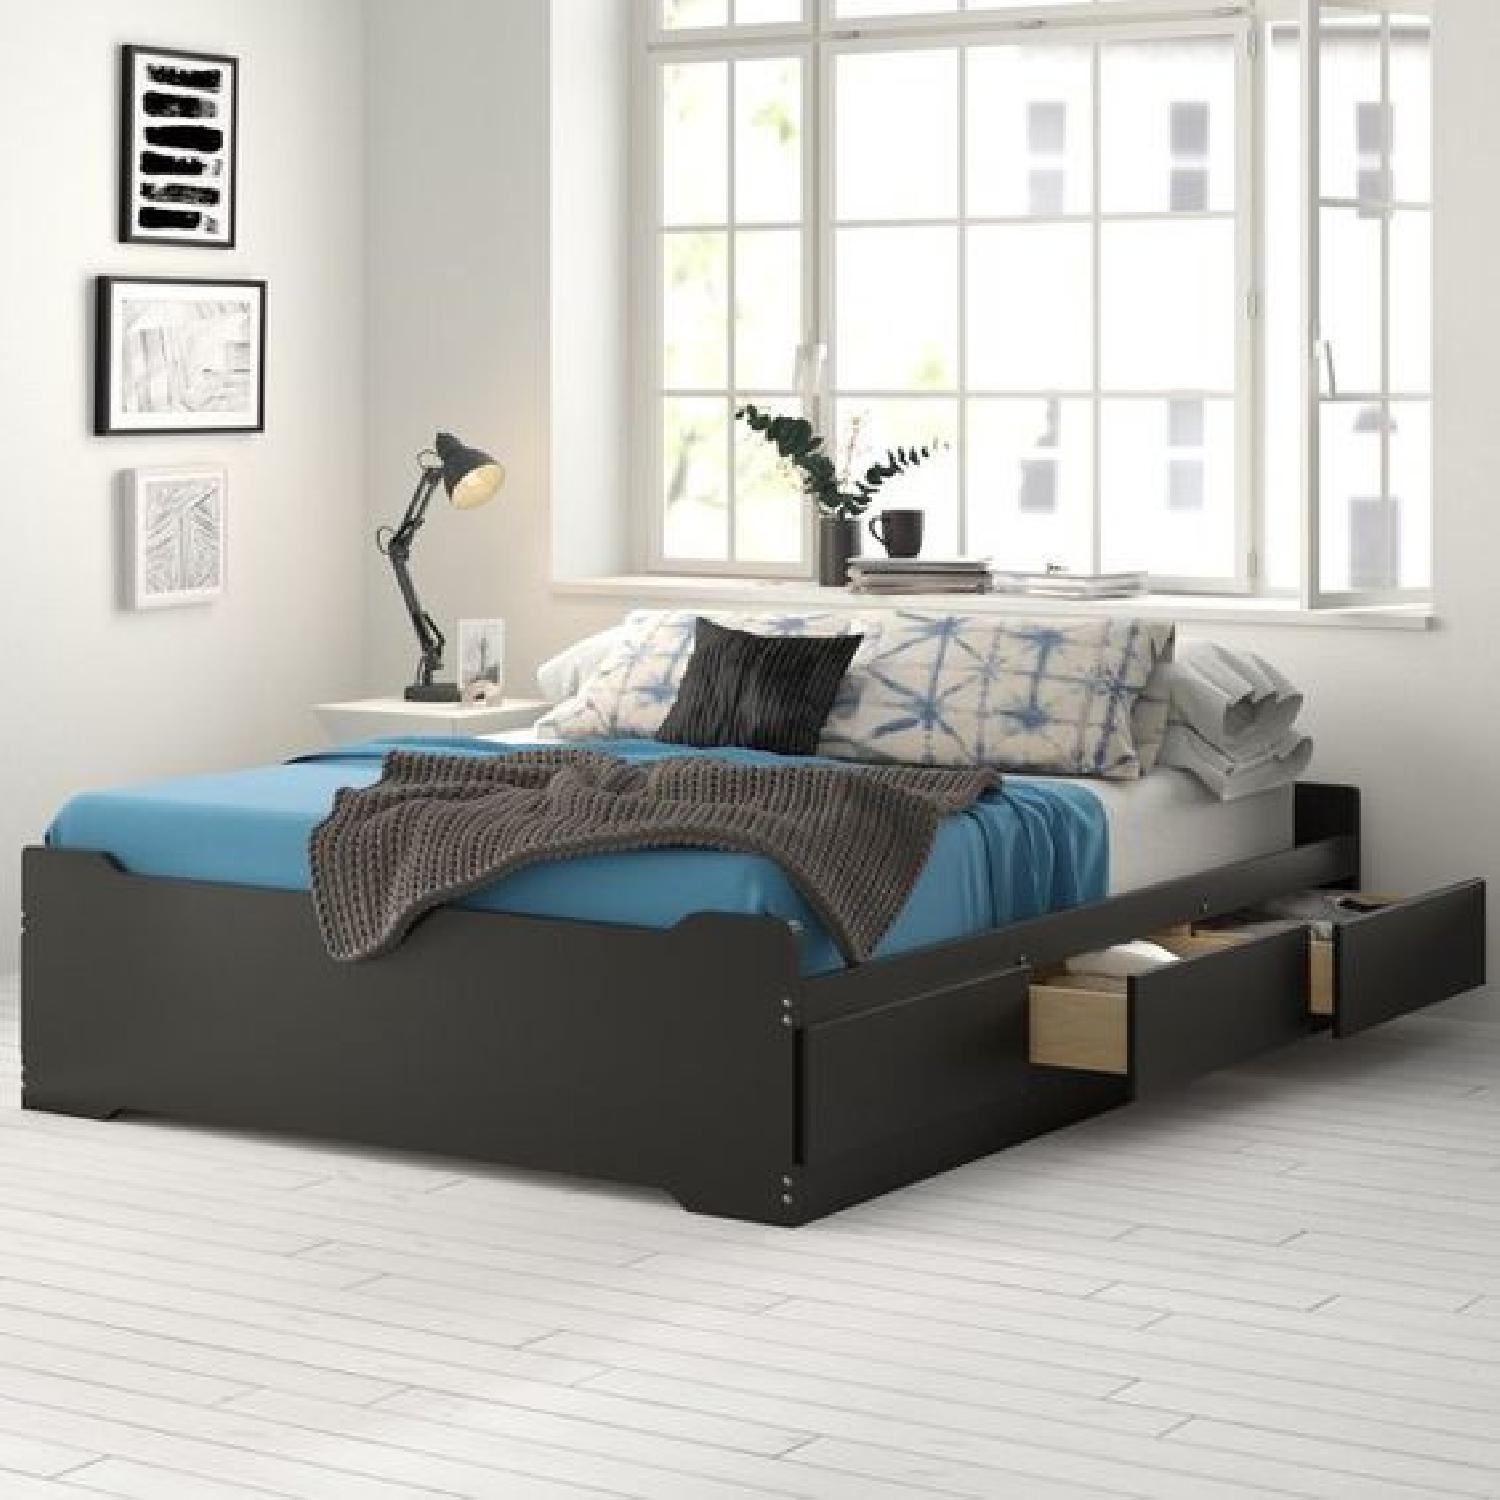 Zipcode Design Oleanna 6-Drawer Full-Size Storage Bed - image-2